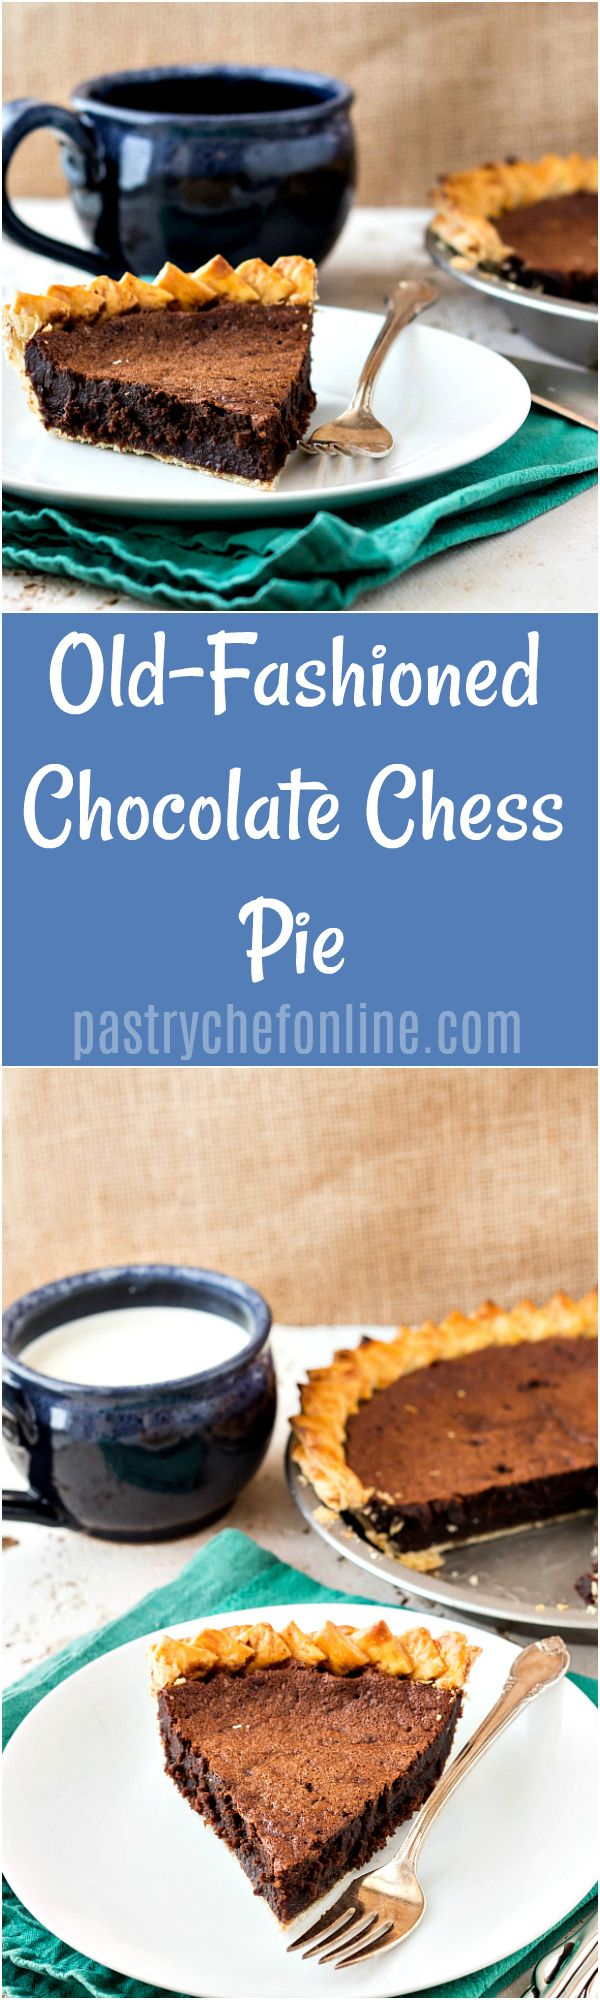 This old-fashioned chocolate chess pie recipe is rich and fudgy yet really easy to make with ingredients you probably already have on hand. Never had chocolate chess pie before? Think of it as a really rich, gooey brownie in a crust! So delicious! | pastr